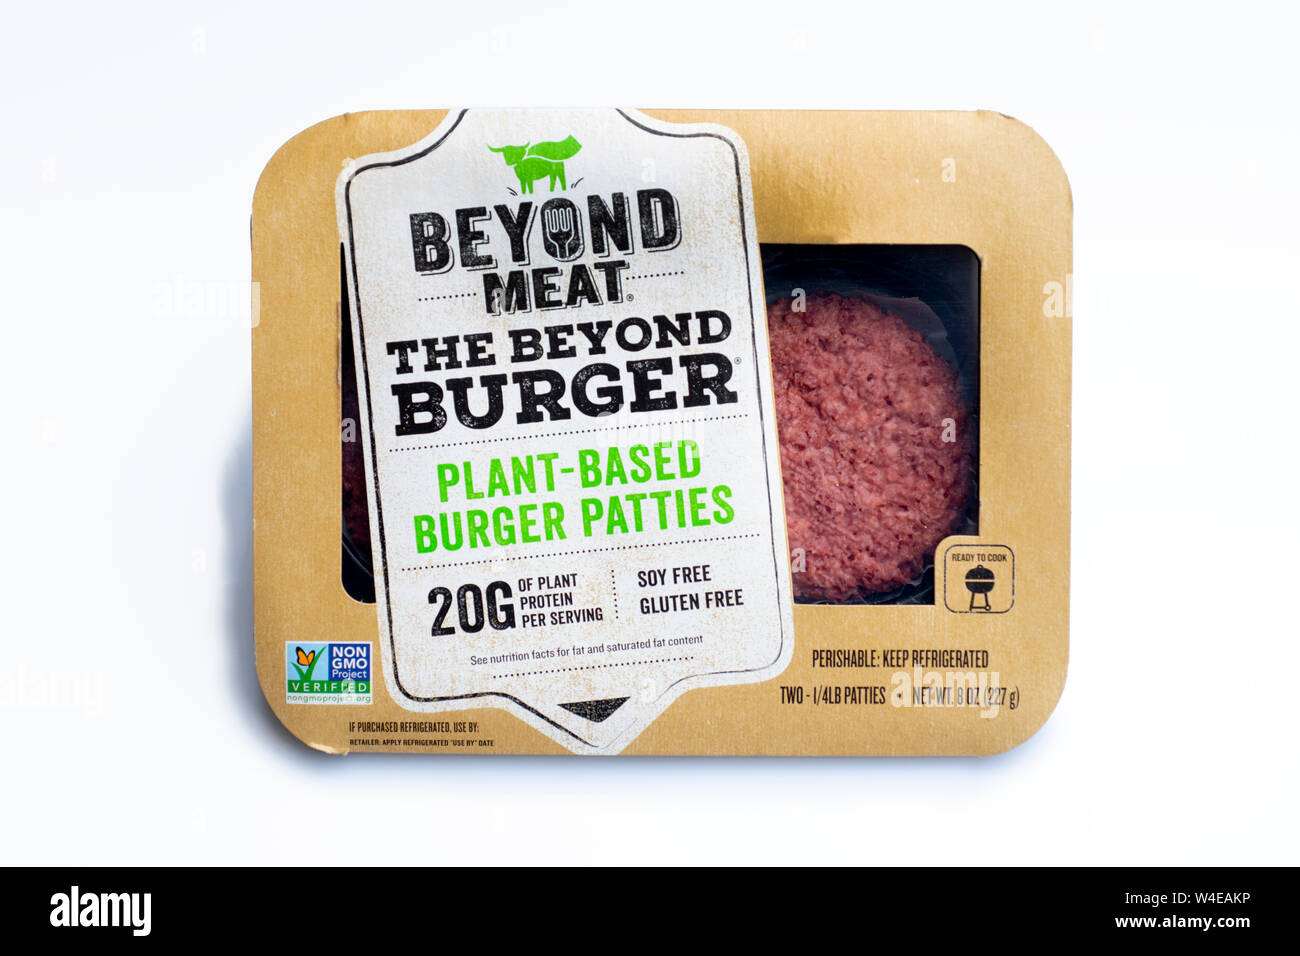 beyond-meat-plant-based-meatless-food-products-for-vegan-and-vegetarian-eating-burger-patties-W4EAKP.jpg